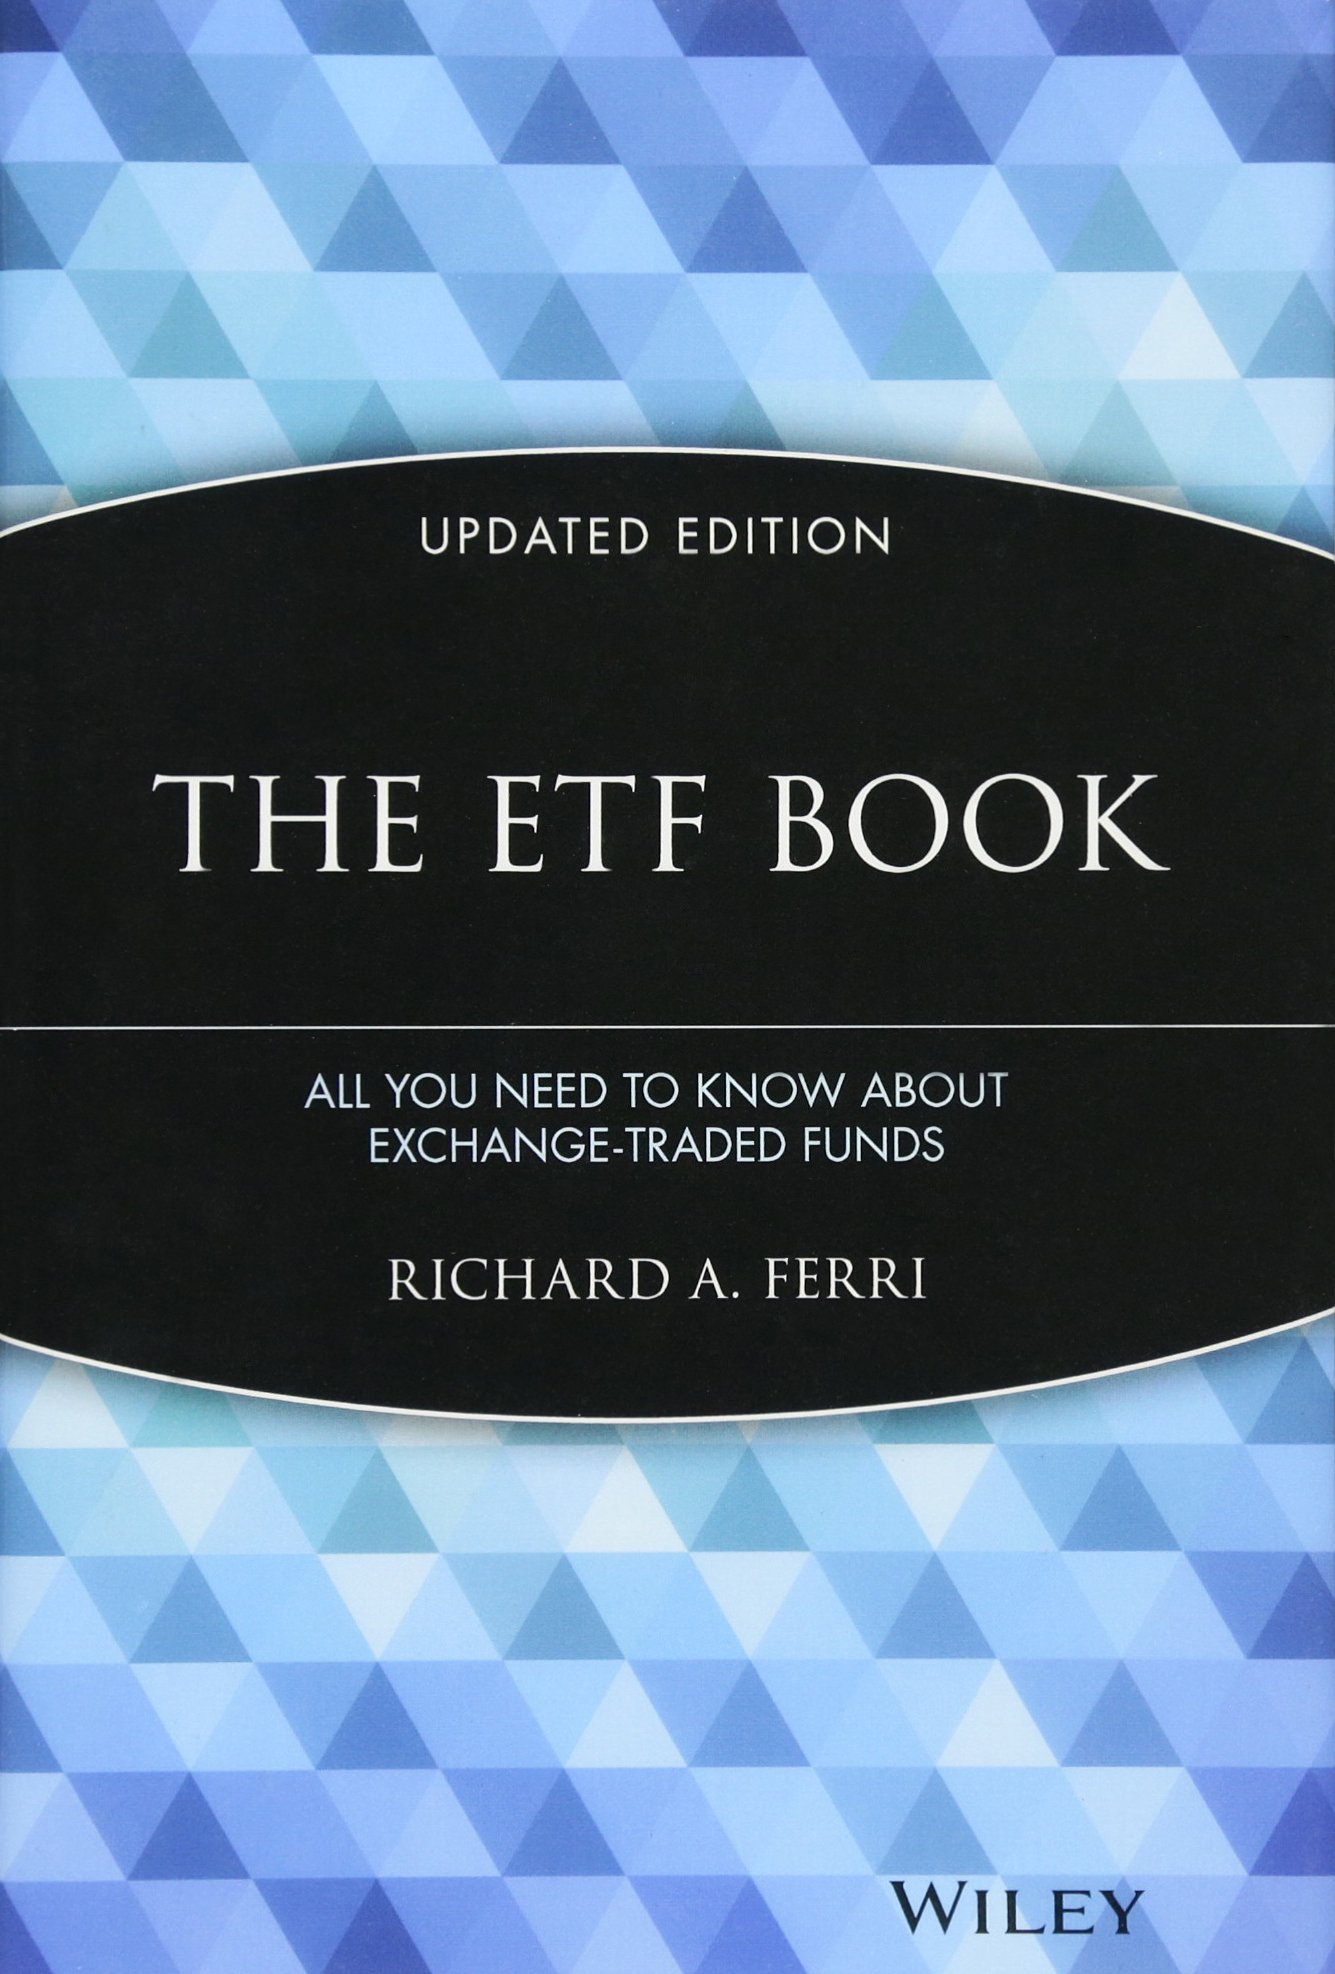 The Etf Book: All You Need To Know About Exchangetraded Funds: Richard A  Ferri: 9780470537466: Amazon: Books